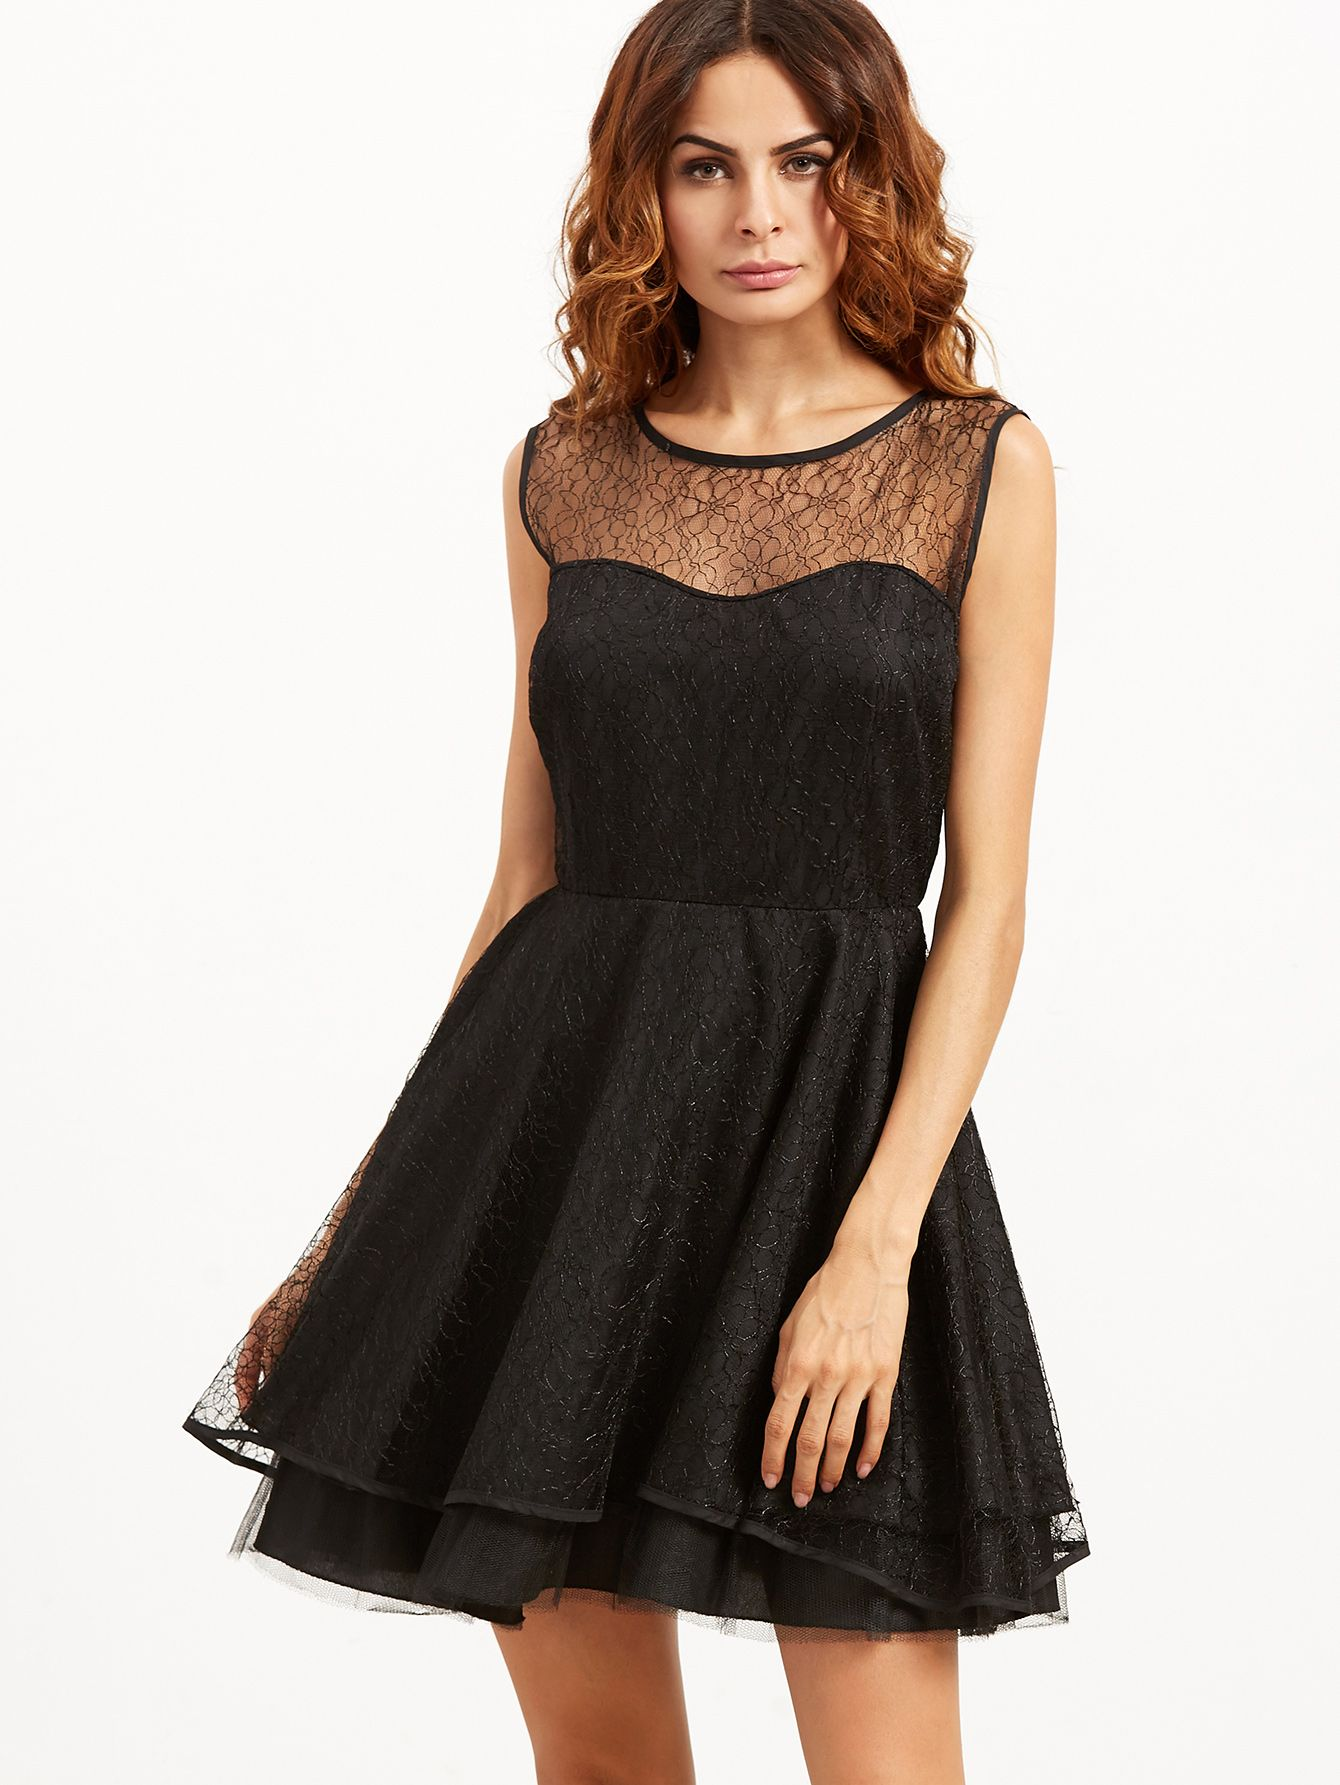 f891da4f5ca Shop Black Sleeveless Layered Lace Dress online. SheIn offers Black  Sleeveless Layered Lace Dress   more to fit your fashionable needs.